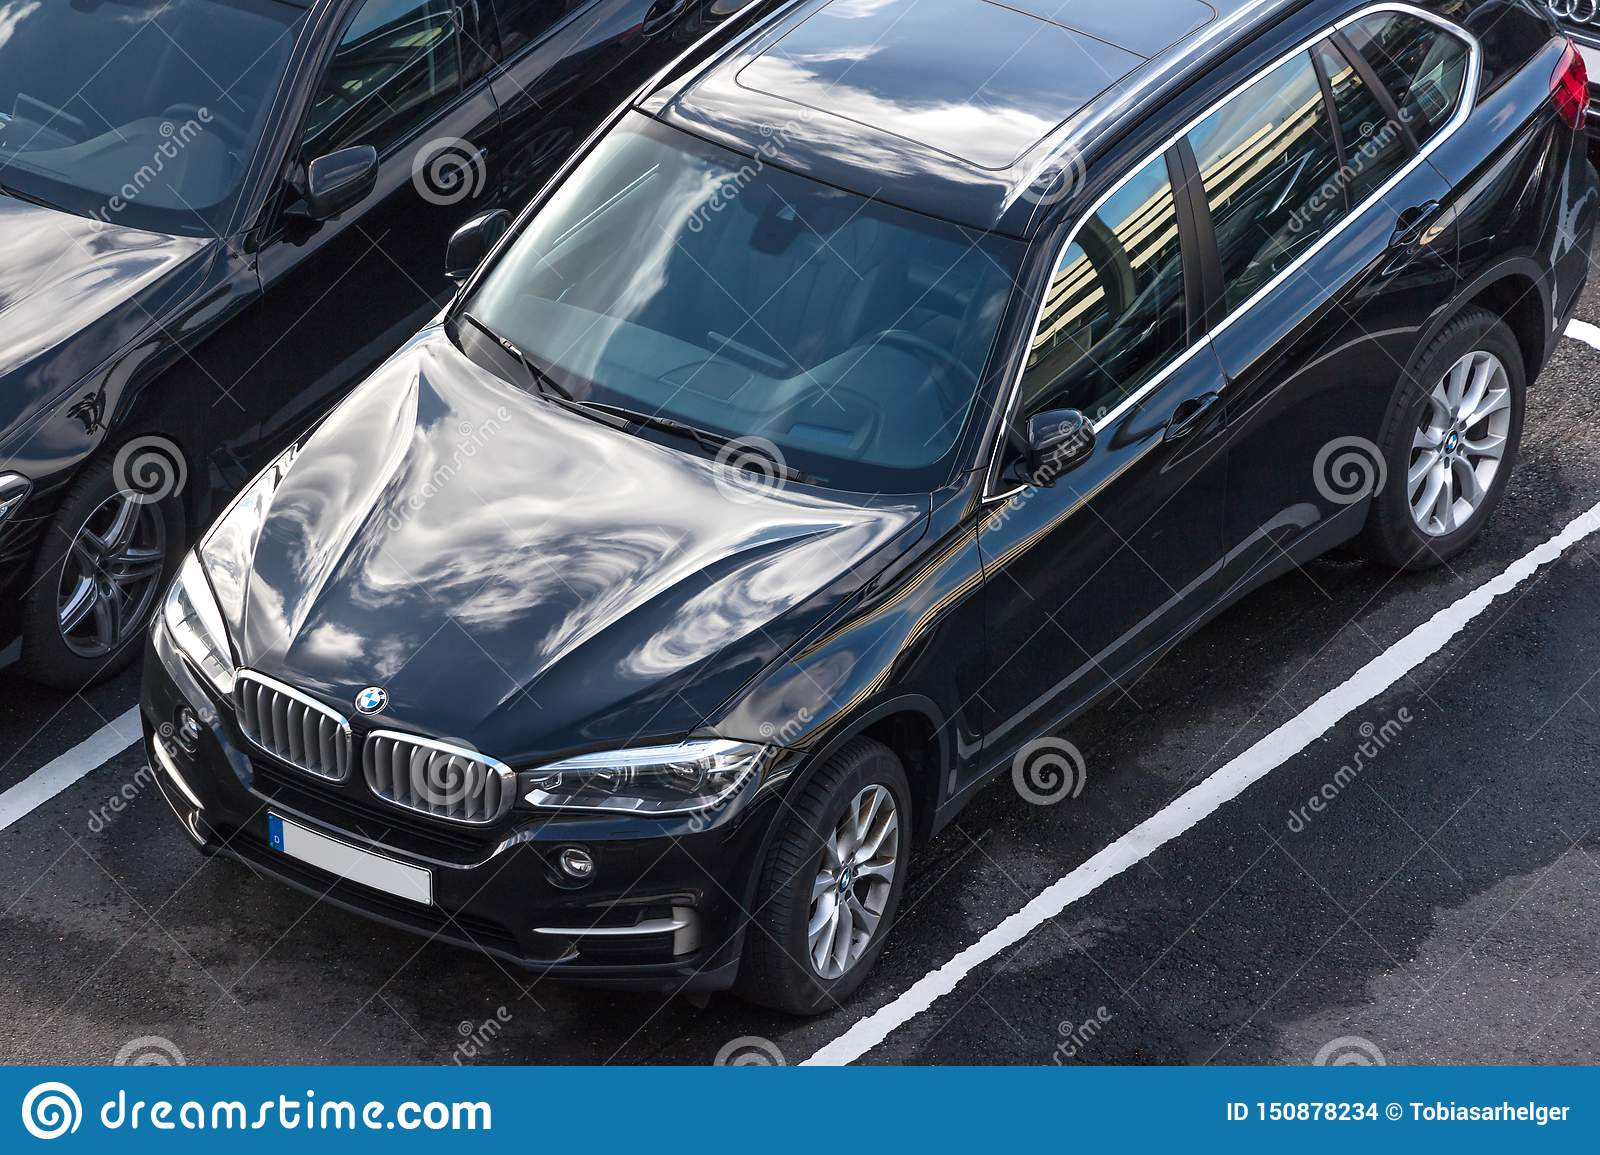 Bmw car from above in cologne germany